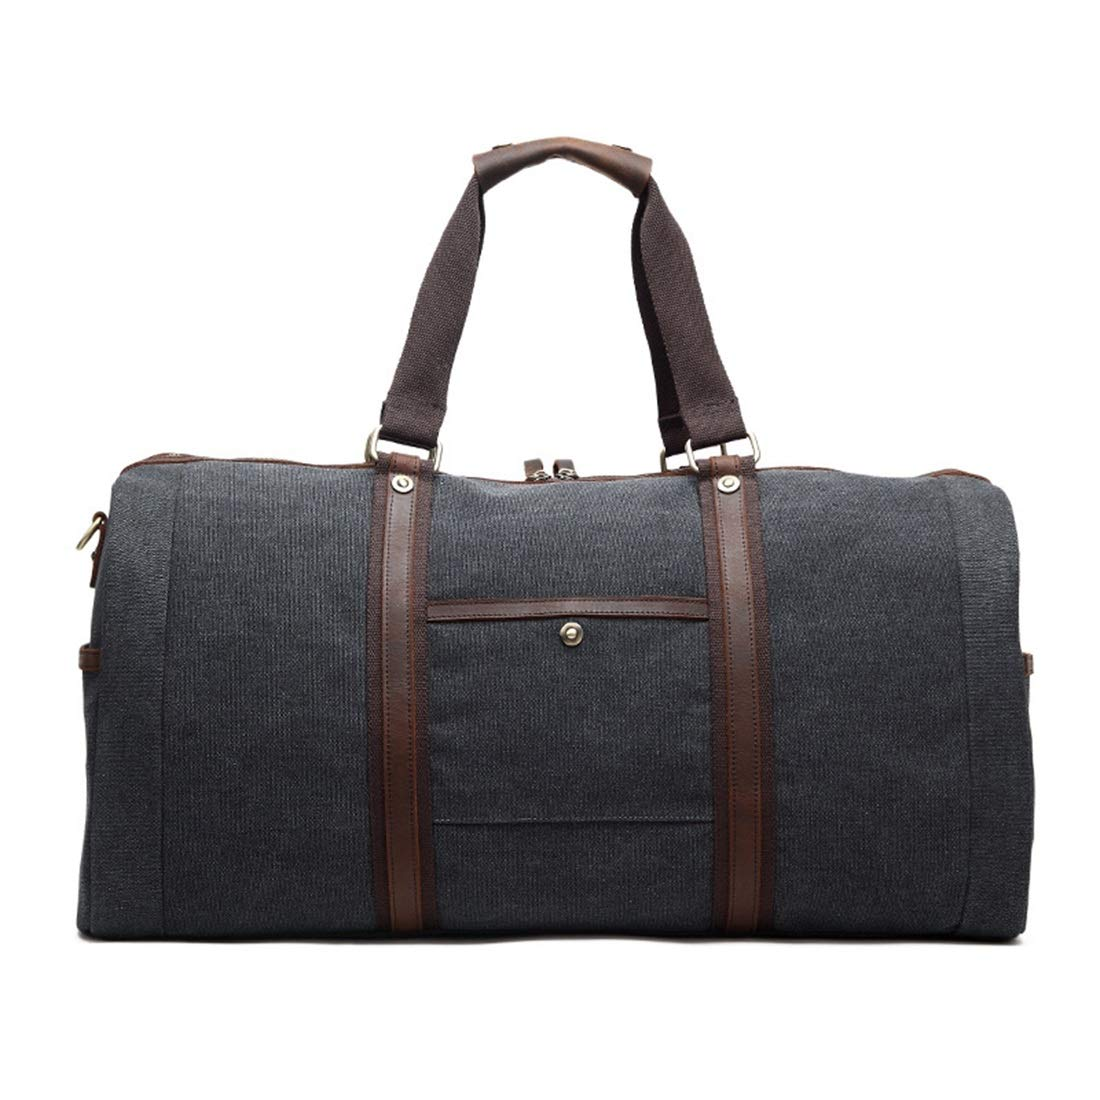 MATCHANT Canvas Traveling Bags Single Shoulder Skew Multi Function Luggage Bags Color : Light Gray Traveling Large Capacity Handbags Casual Mens Canvas Mens Bags.